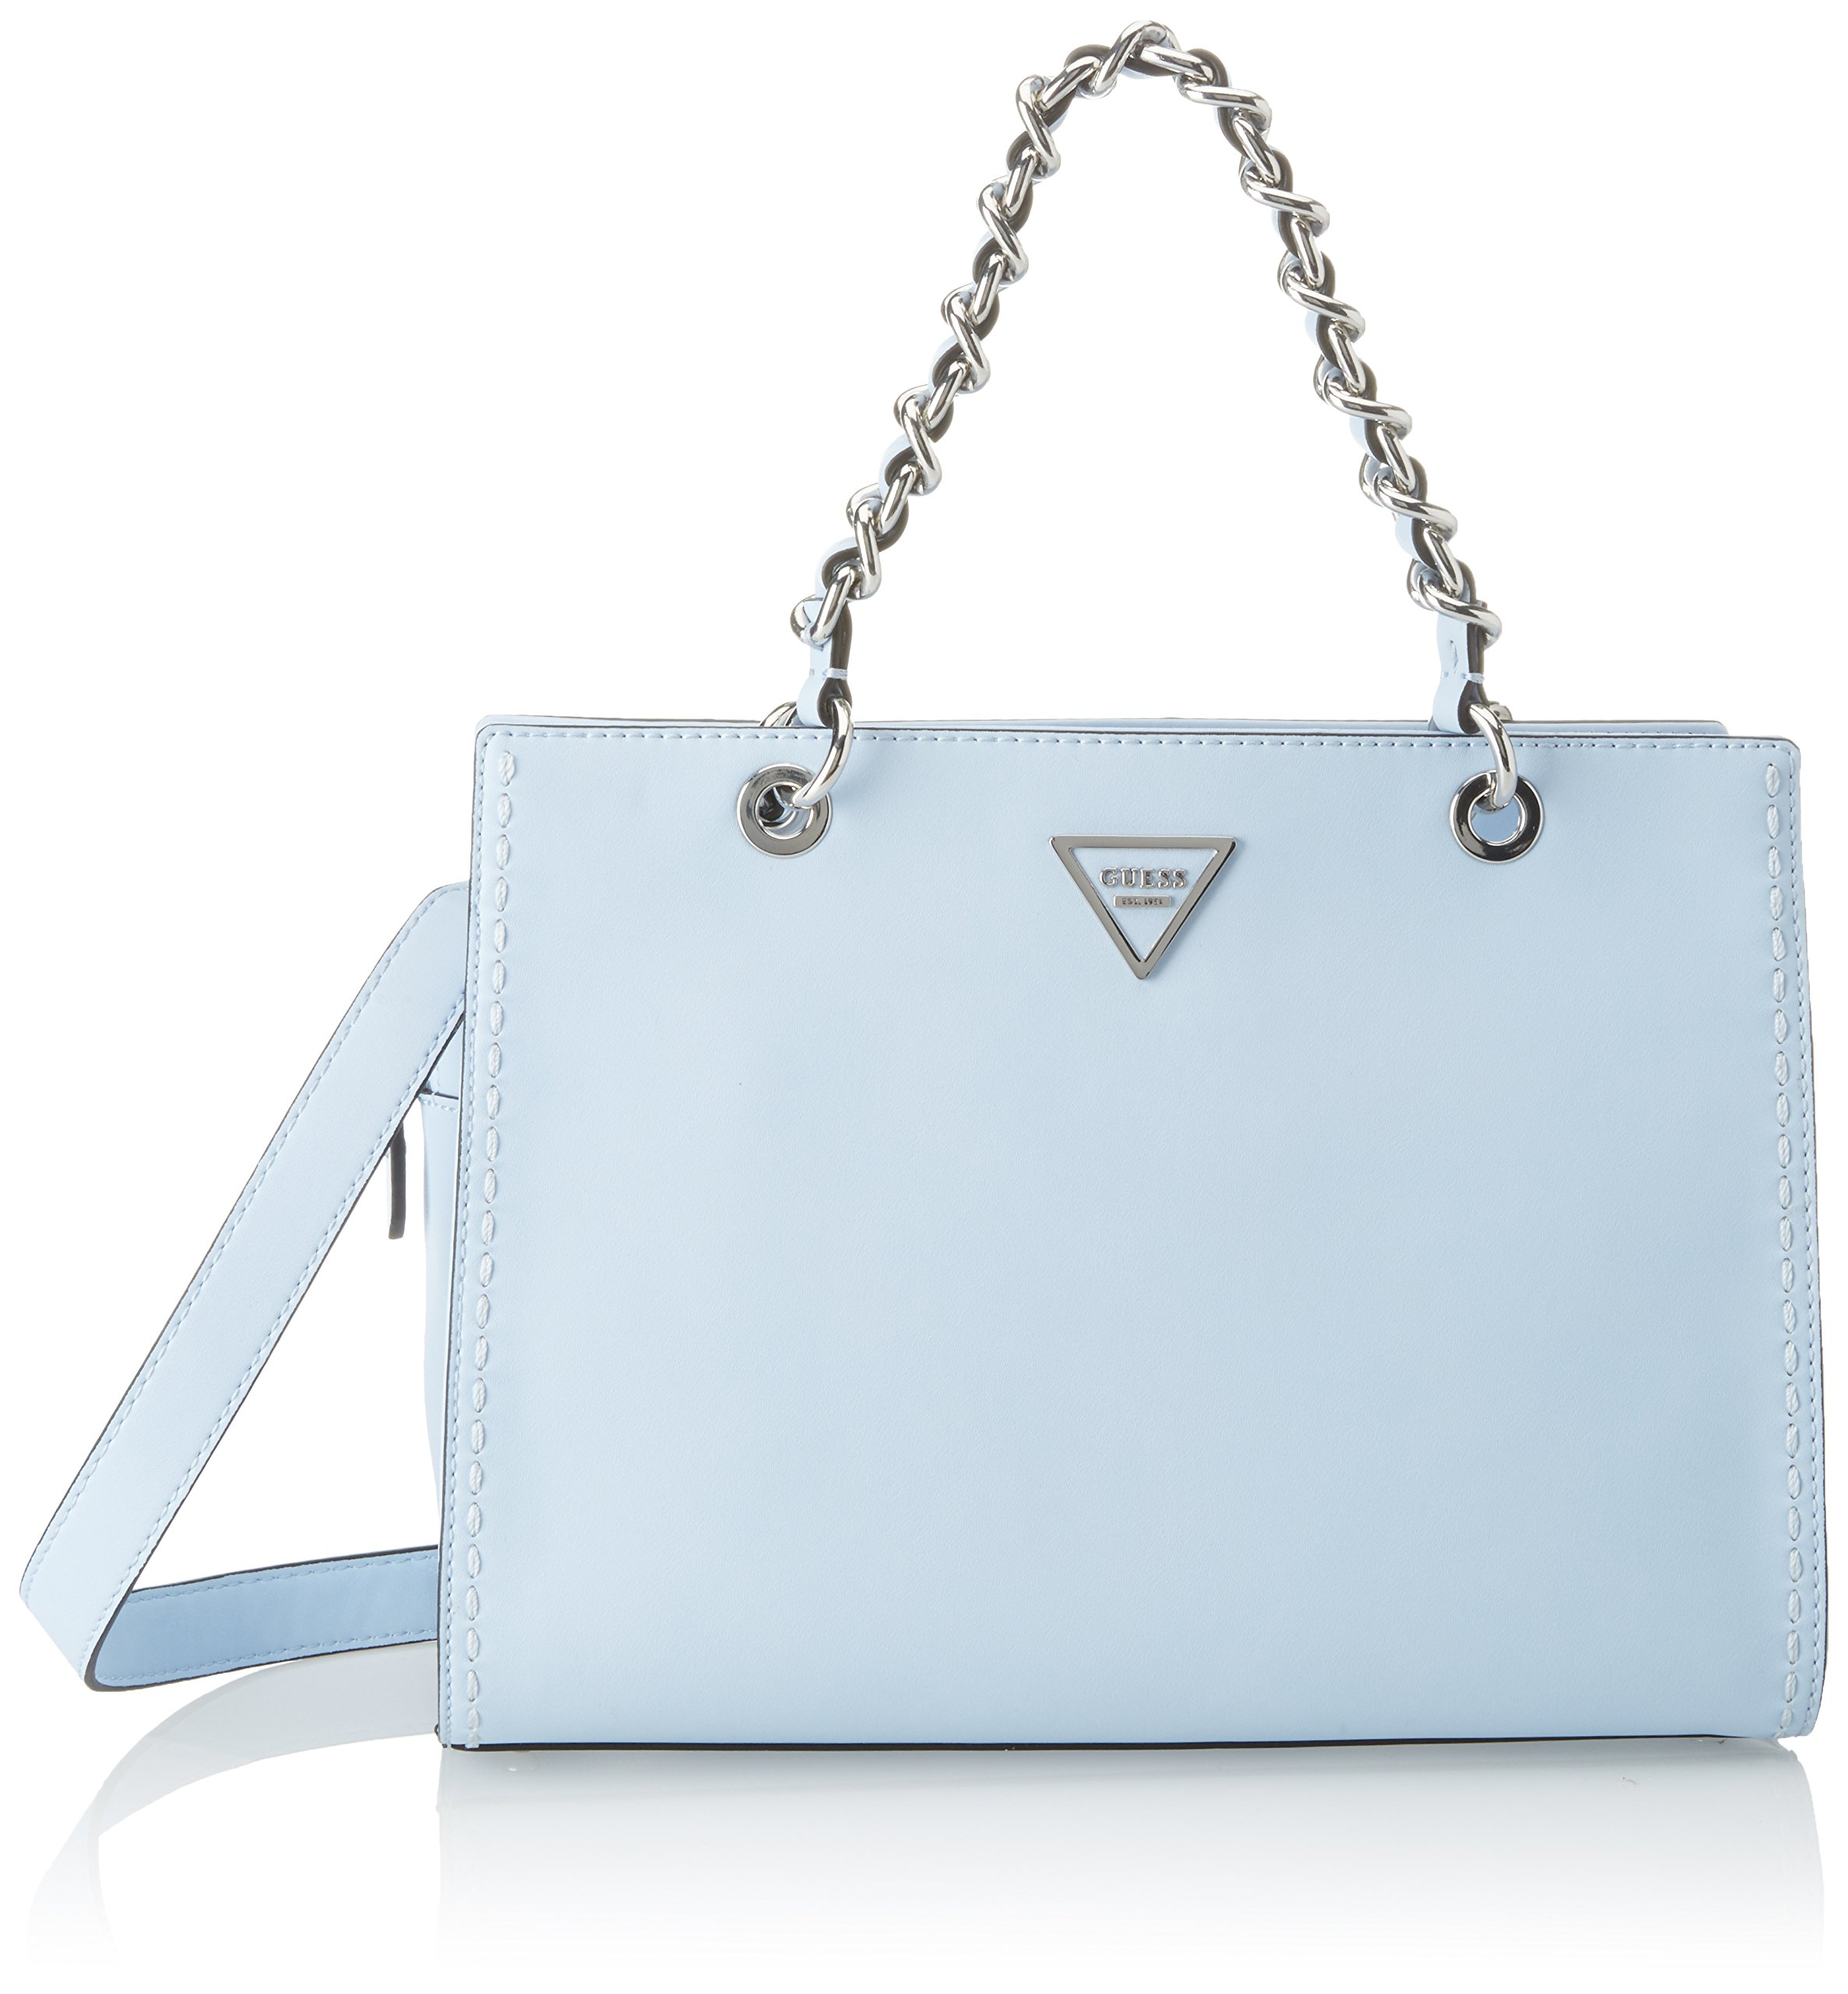 GUESS Sawyer Satchel, Sky